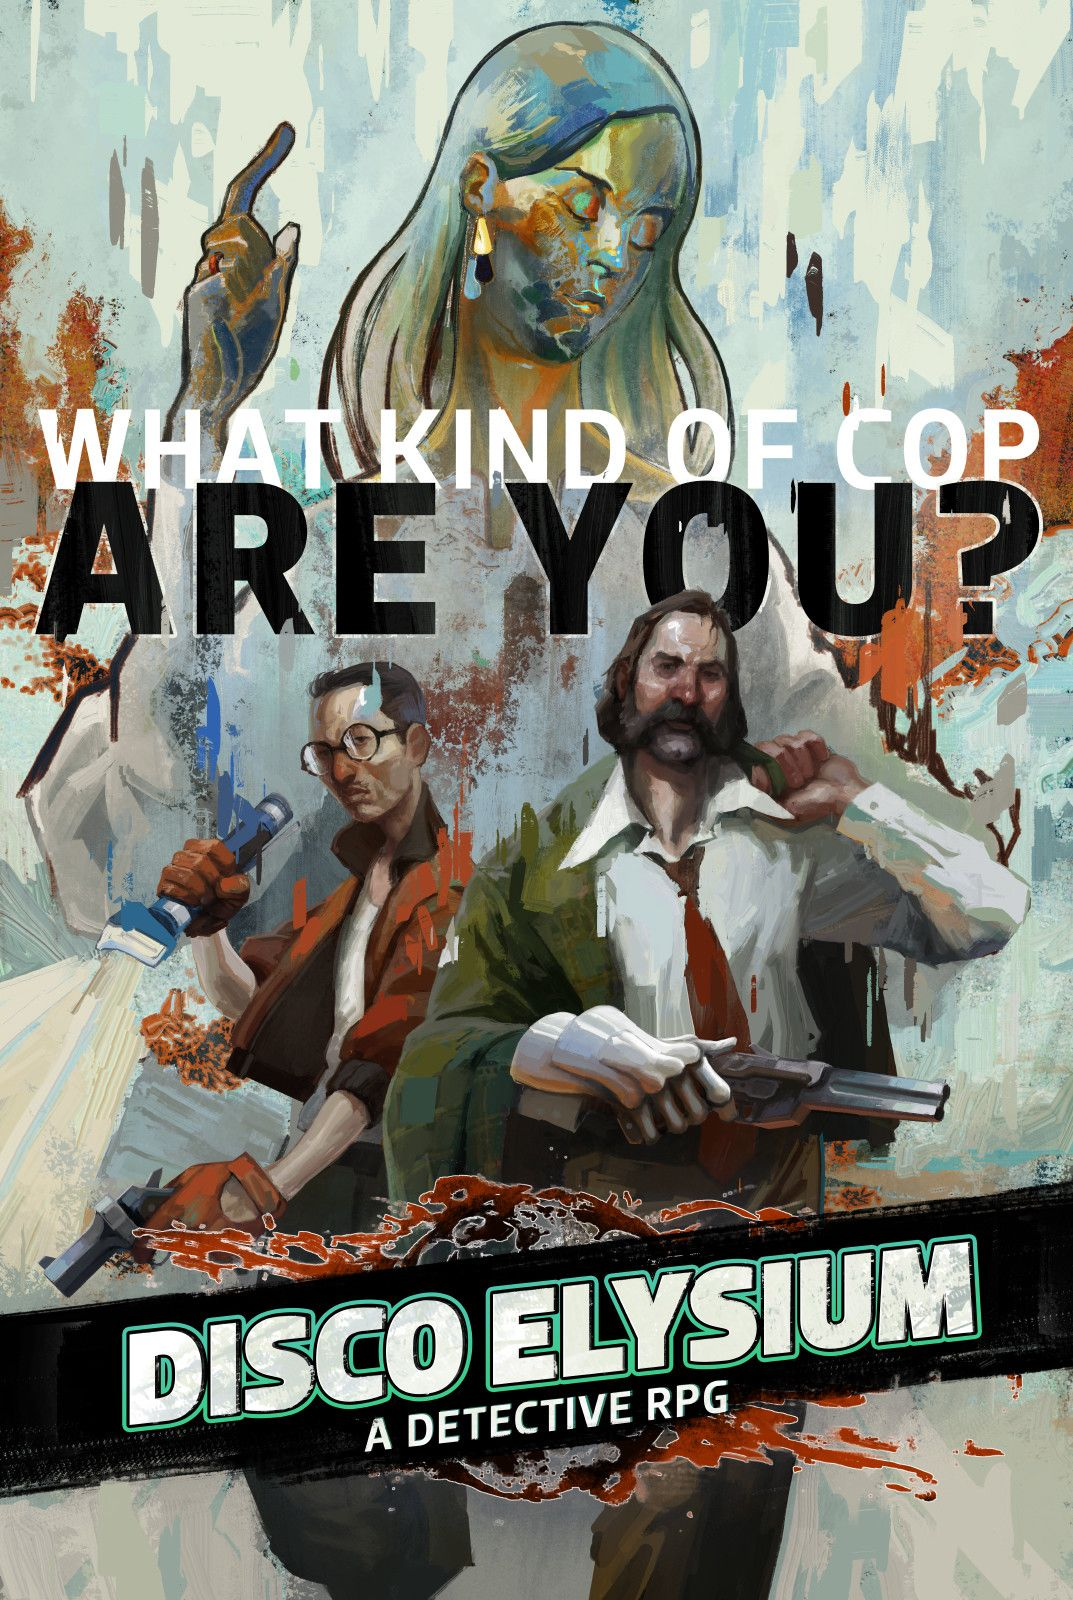 Disco Elysium Cover Art Aleksander Rostov On Artstation At Https Www Artstation Com Artwork Vkeva Cover Art Disco Elysium